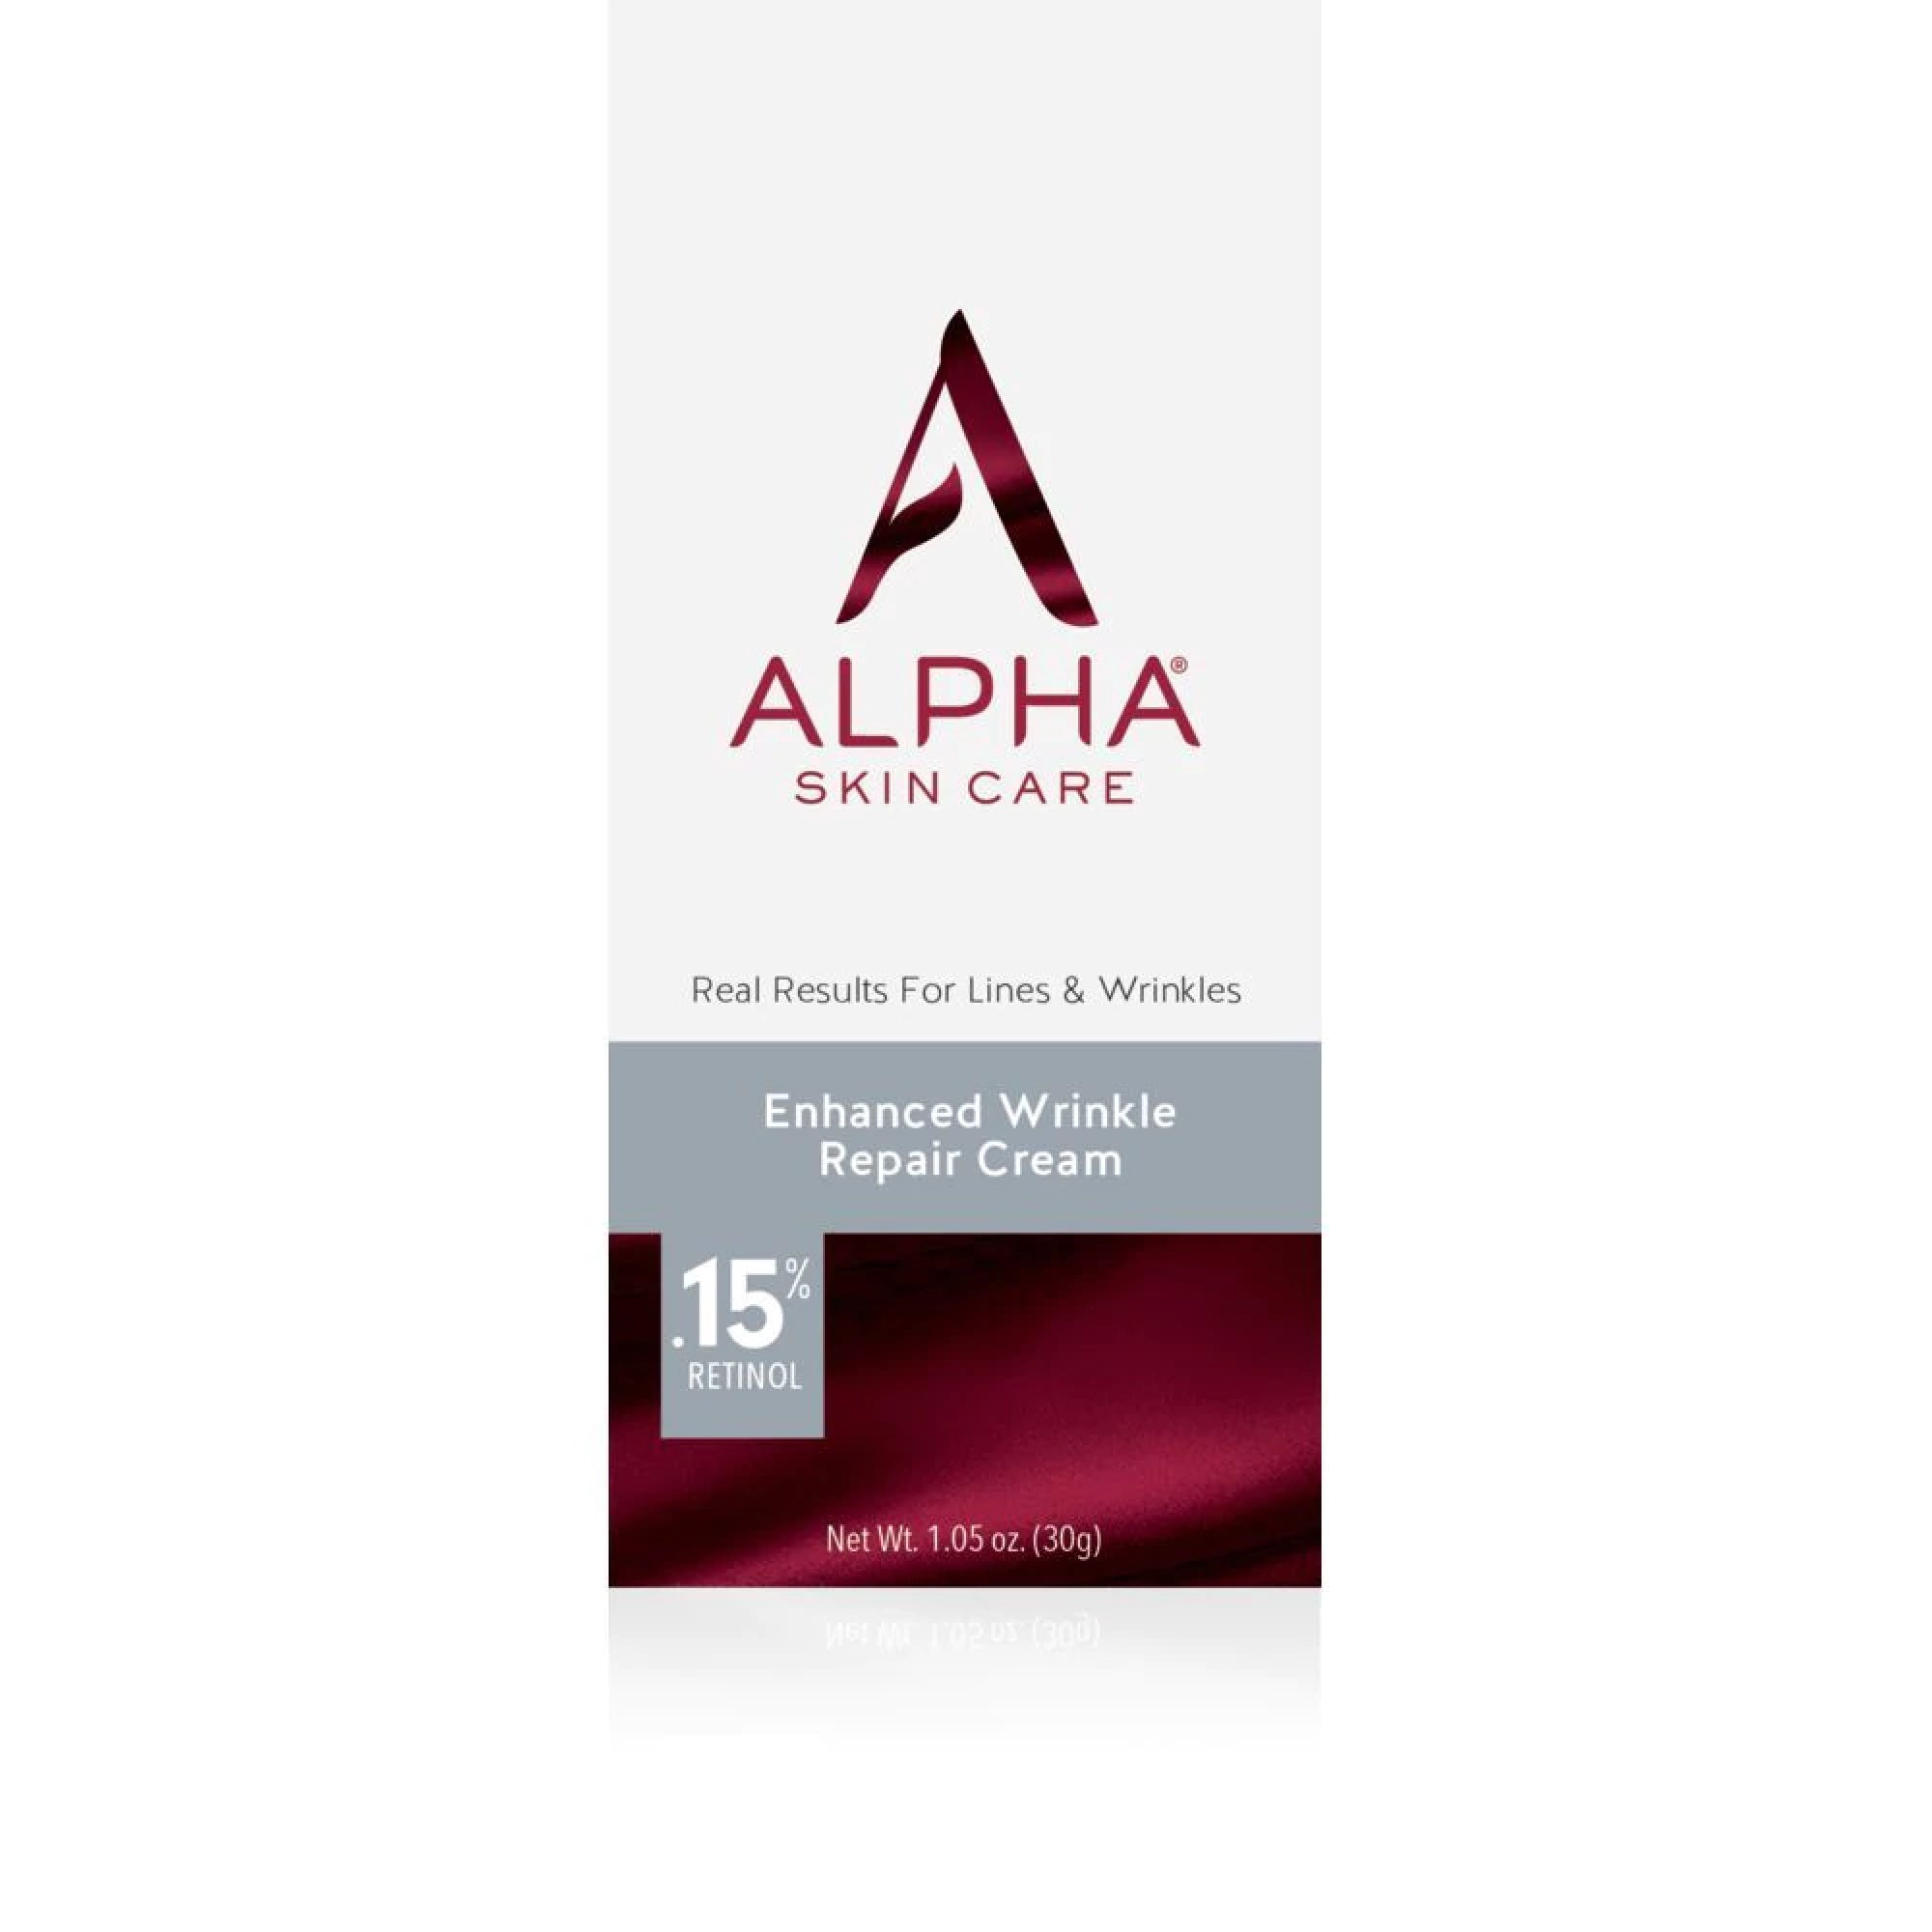 Alpha Enhanced Wrinkle Repair Cream with .15% Retinol